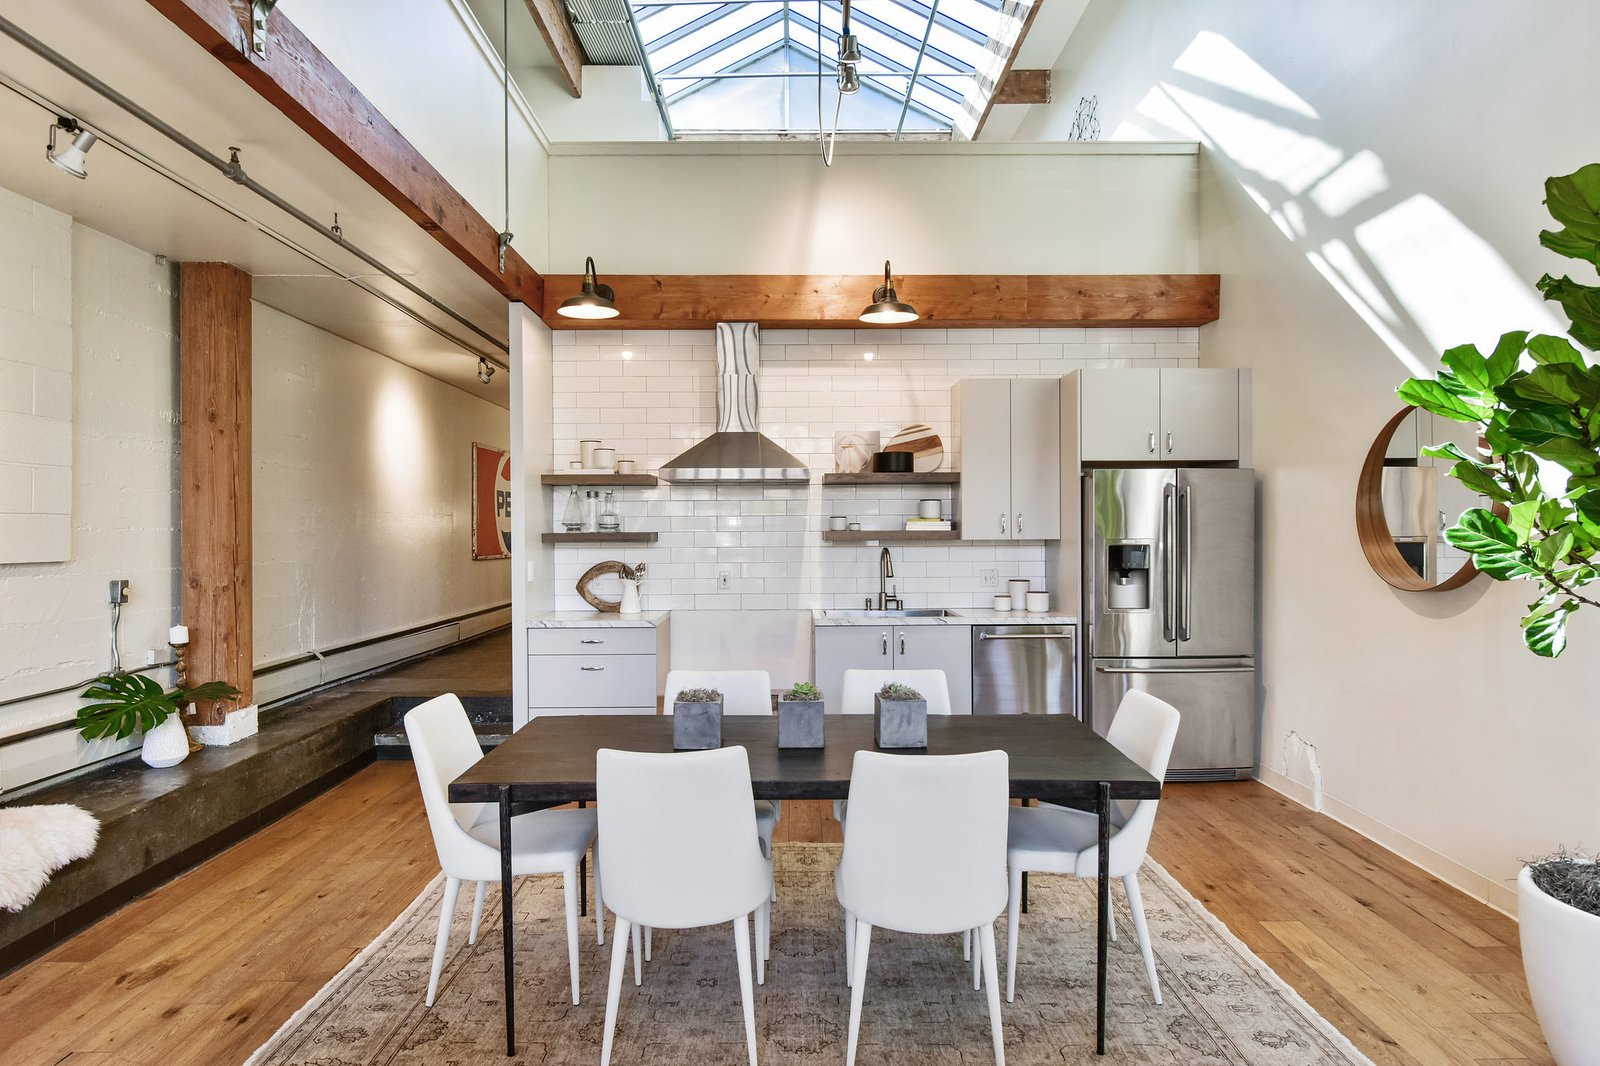 Bright and airy, the updated kitchen features a white subway-tile backsplash and stainless-steel appliances. An open dining area sits connects it with the living area.  Photo 4 of 9 in A Converted Warehouse Loft in the San Francisco Bay Area Seeks $950K